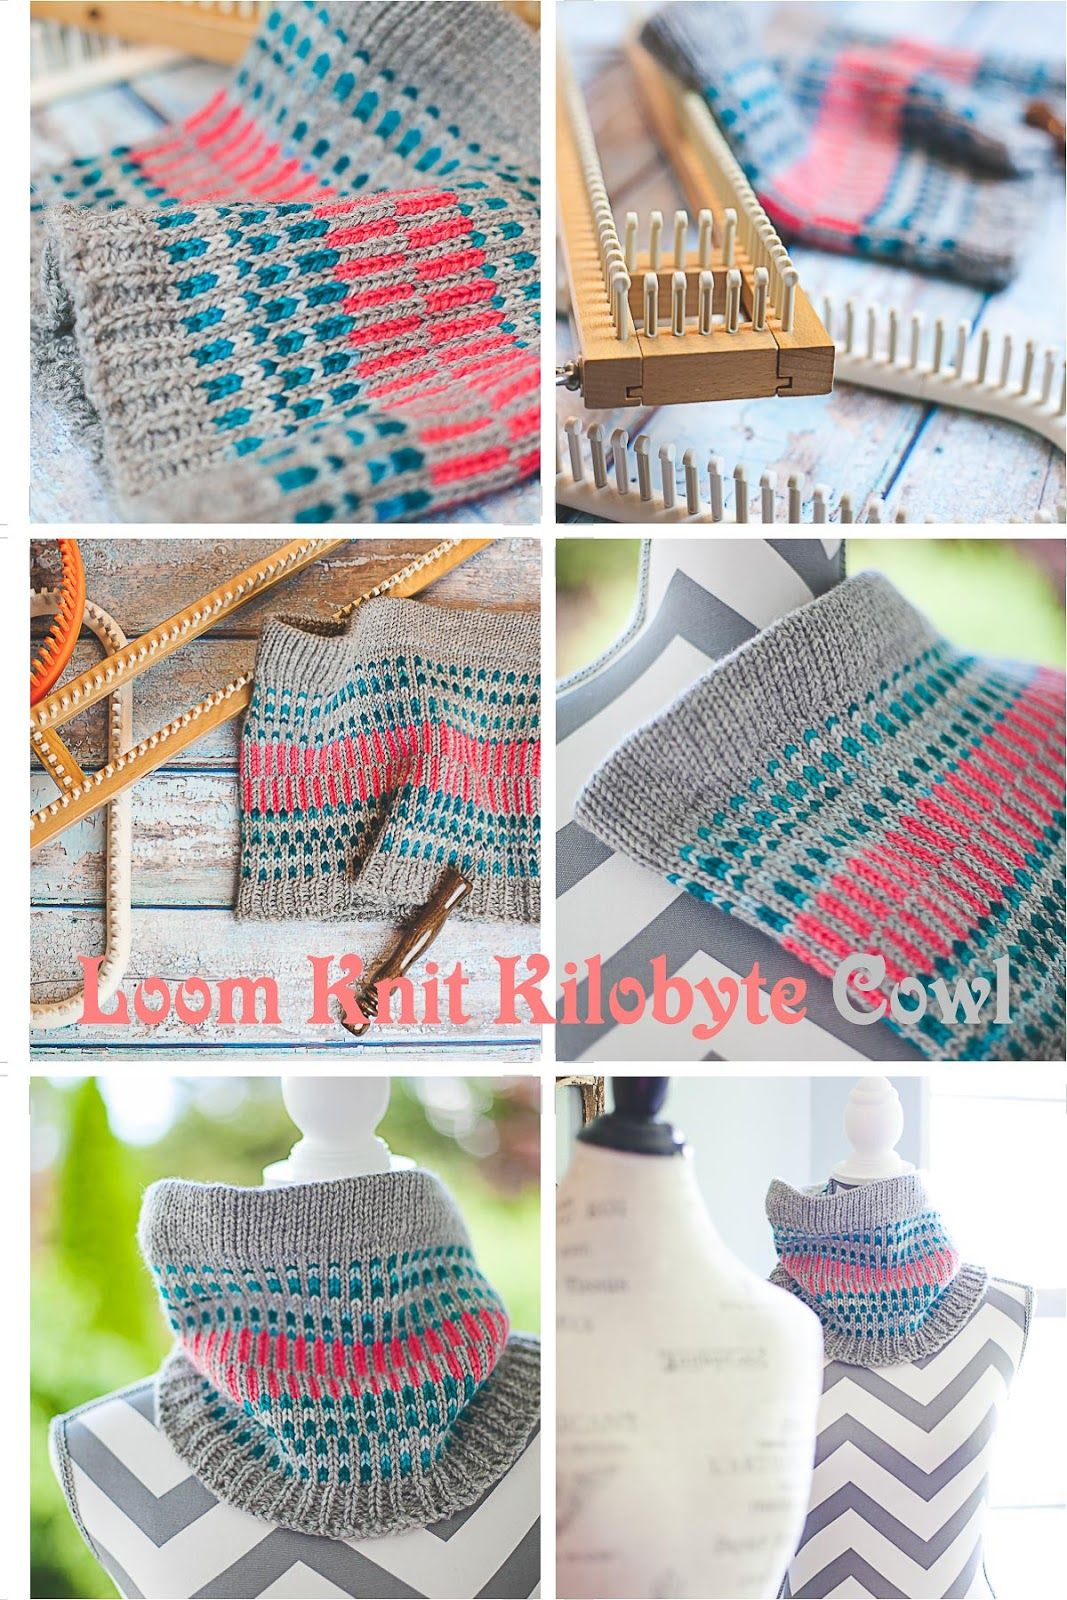 Loom Knit Cowl Pattern (Free) | Loom Knitting by This Moment is Good! #loomknitting